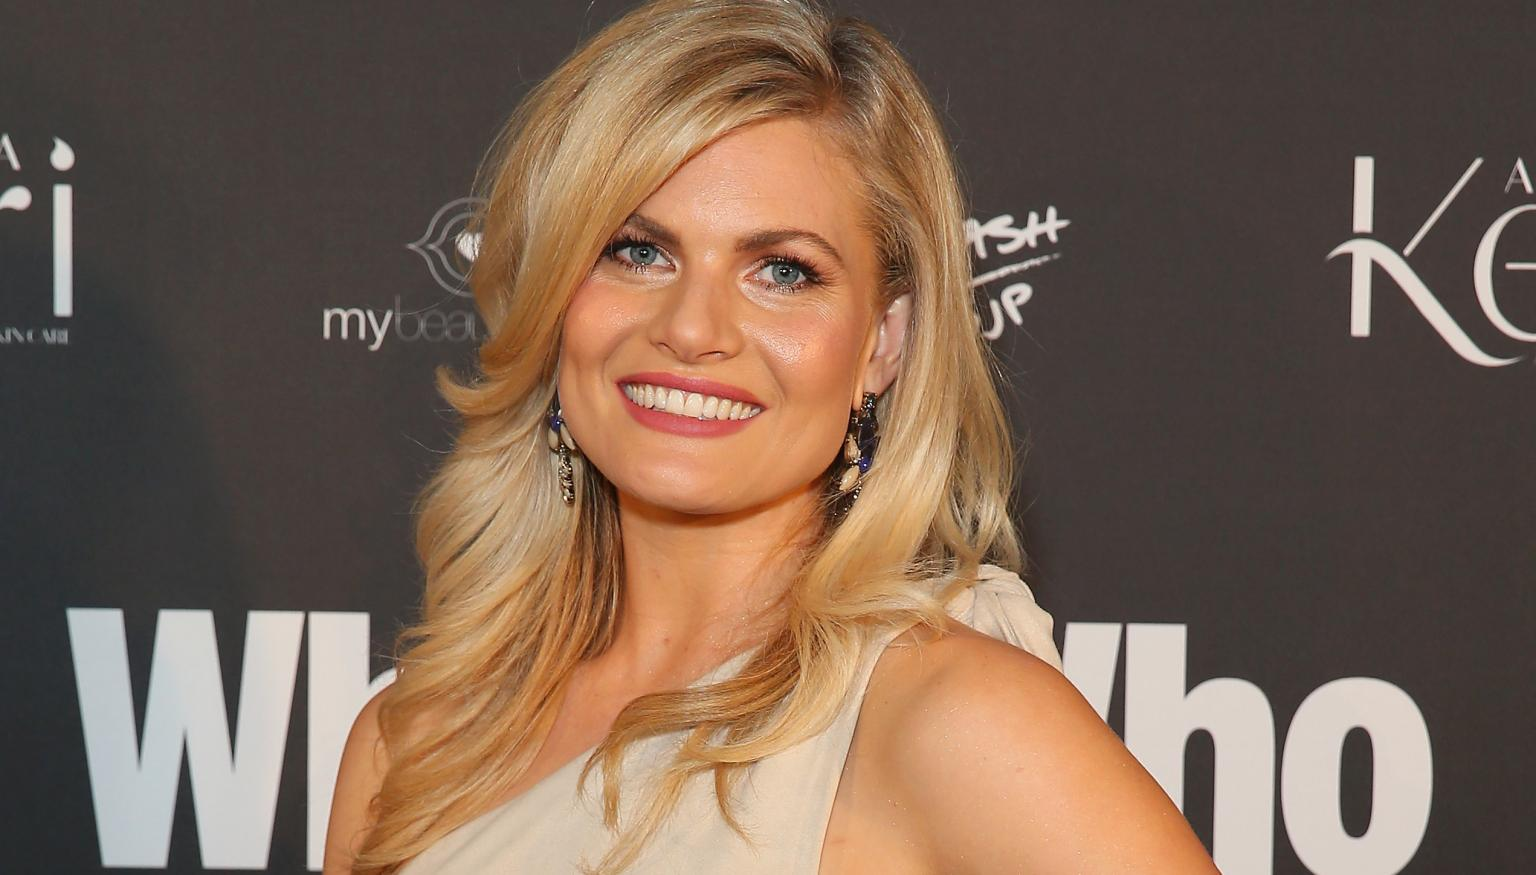 Bonnie Sveen nude (18 foto and video), Topless, Sideboobs, Feet, swimsuit 2018